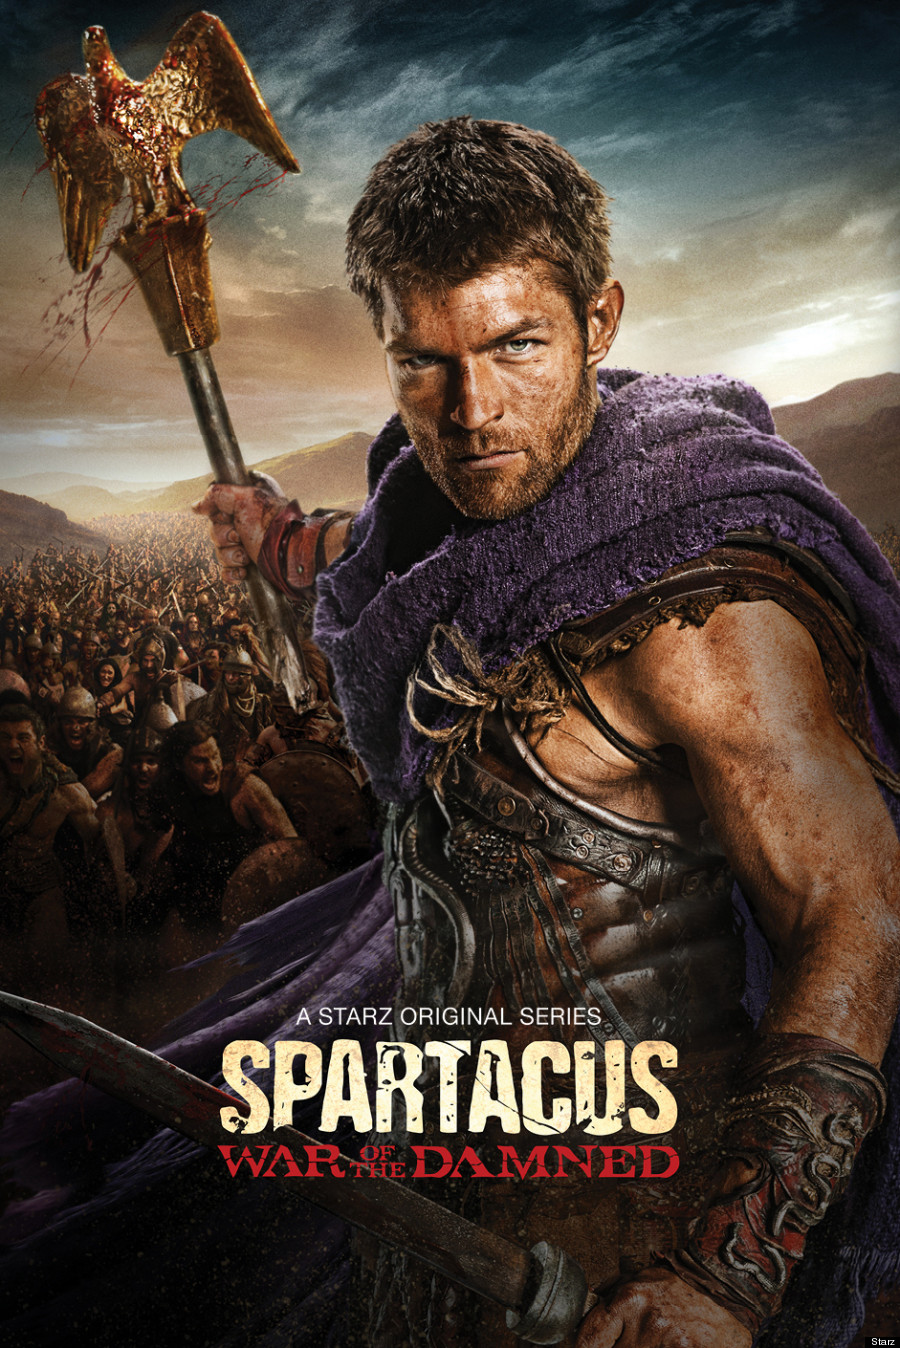 Spartacus - War of the Damned